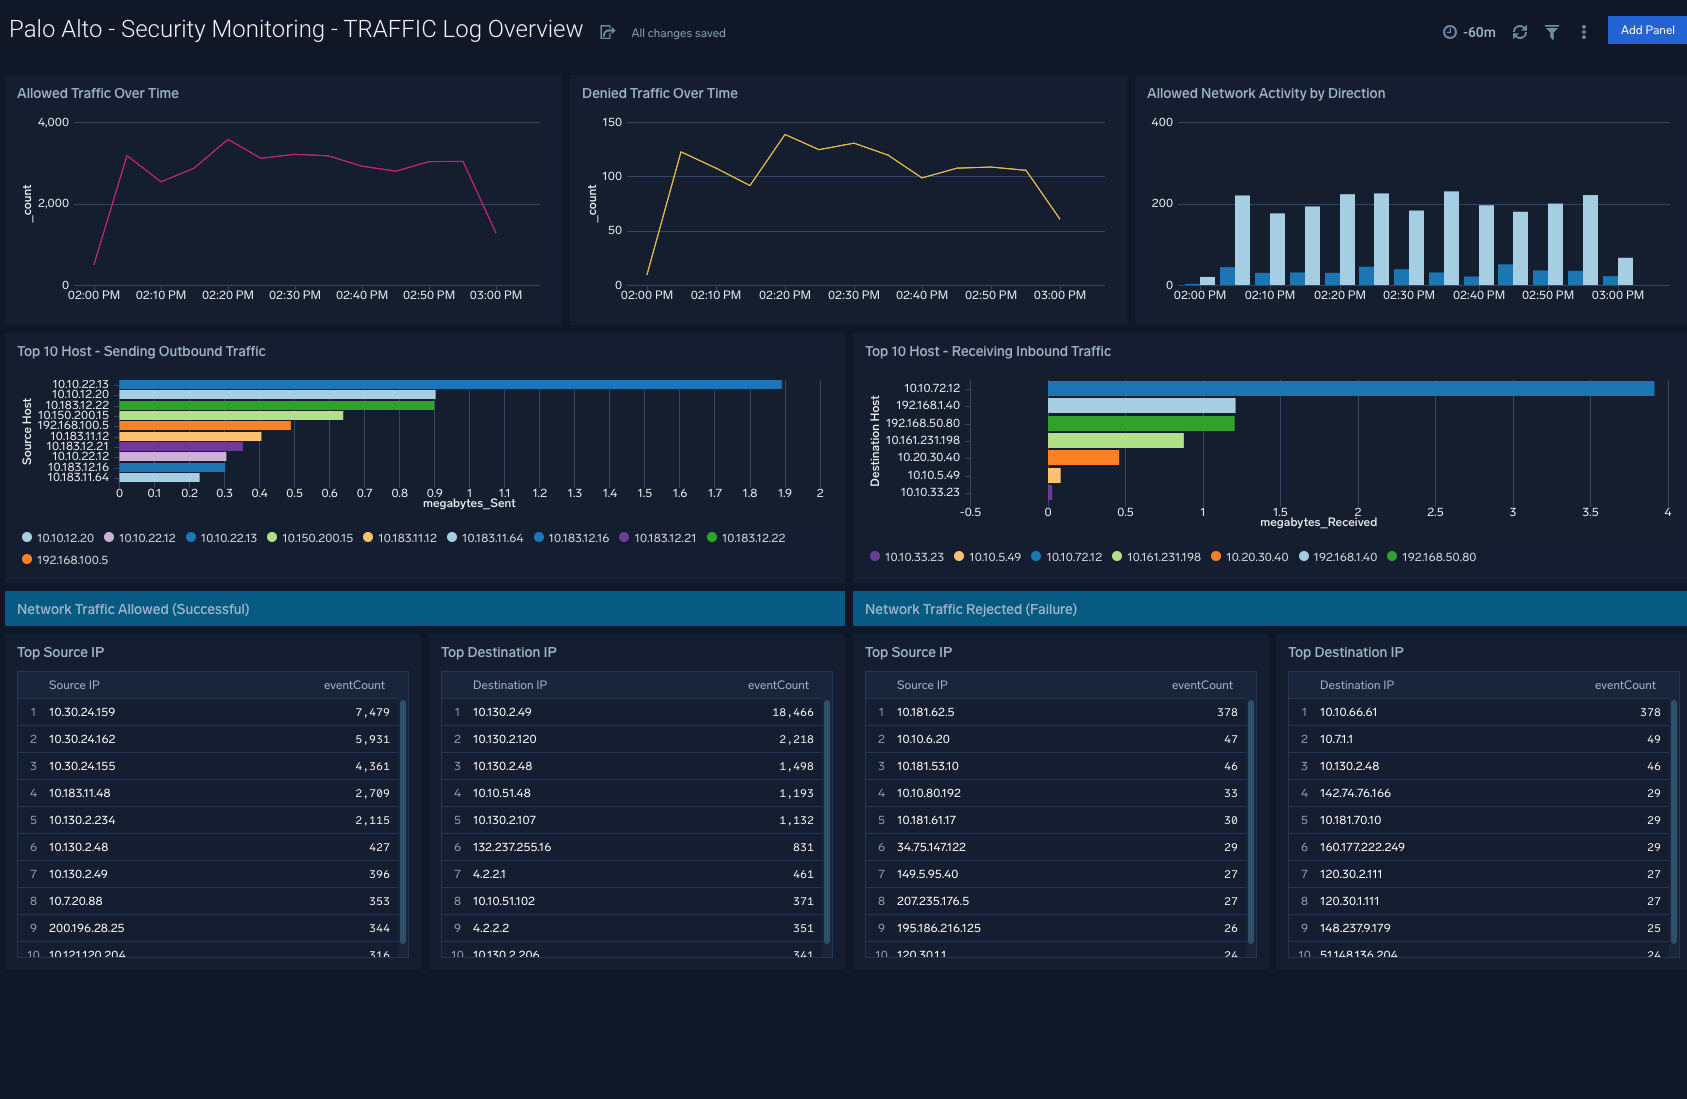 Palo Alto - Security Monitoring - TRAFFIC Log Overview